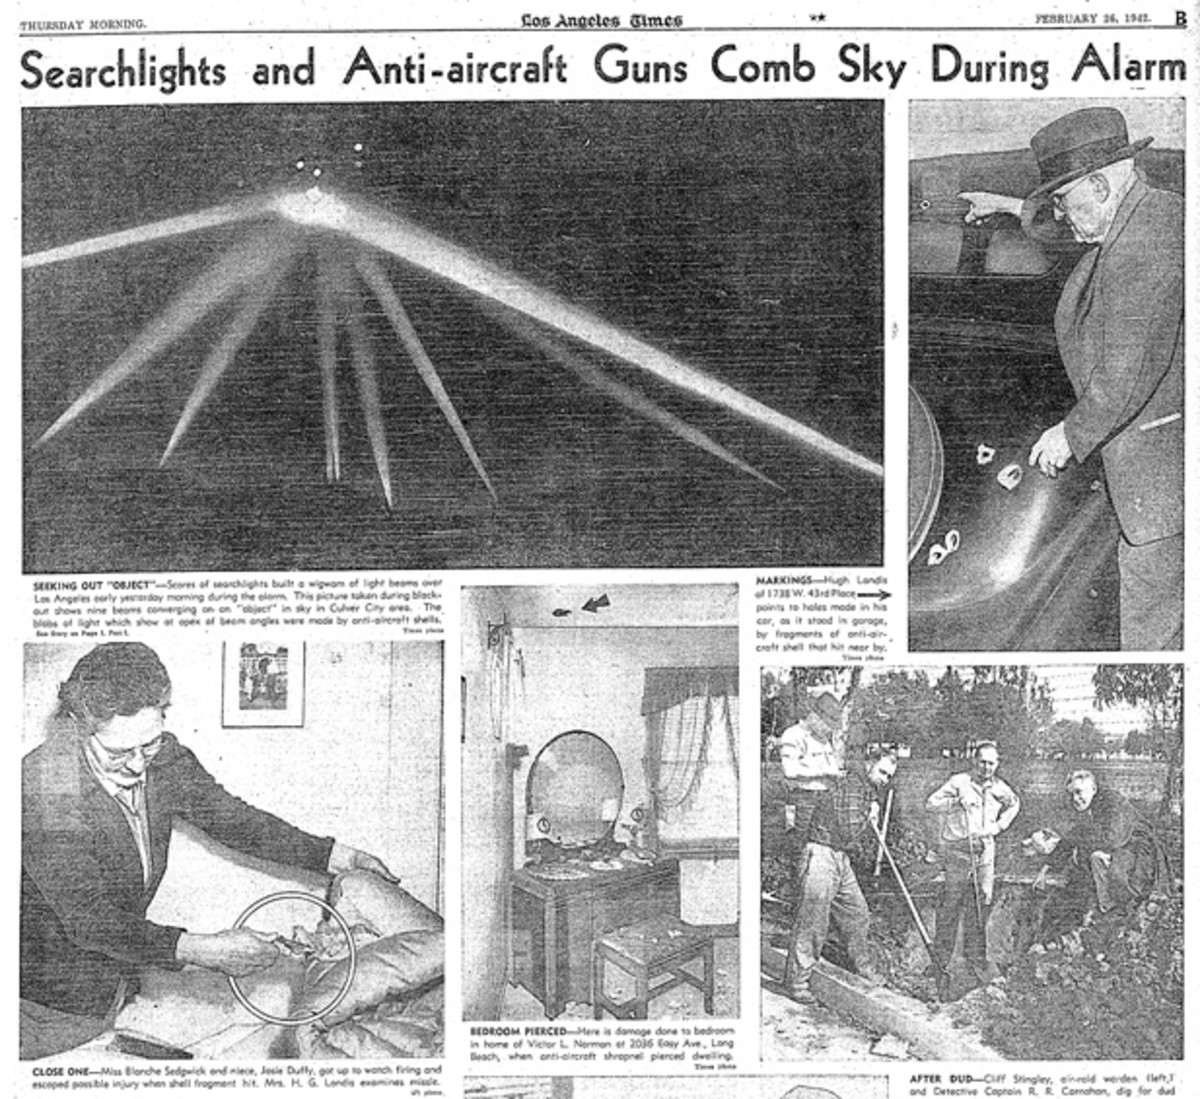 more images from Los Angeles Times, Feb.26 ,1942 edition.